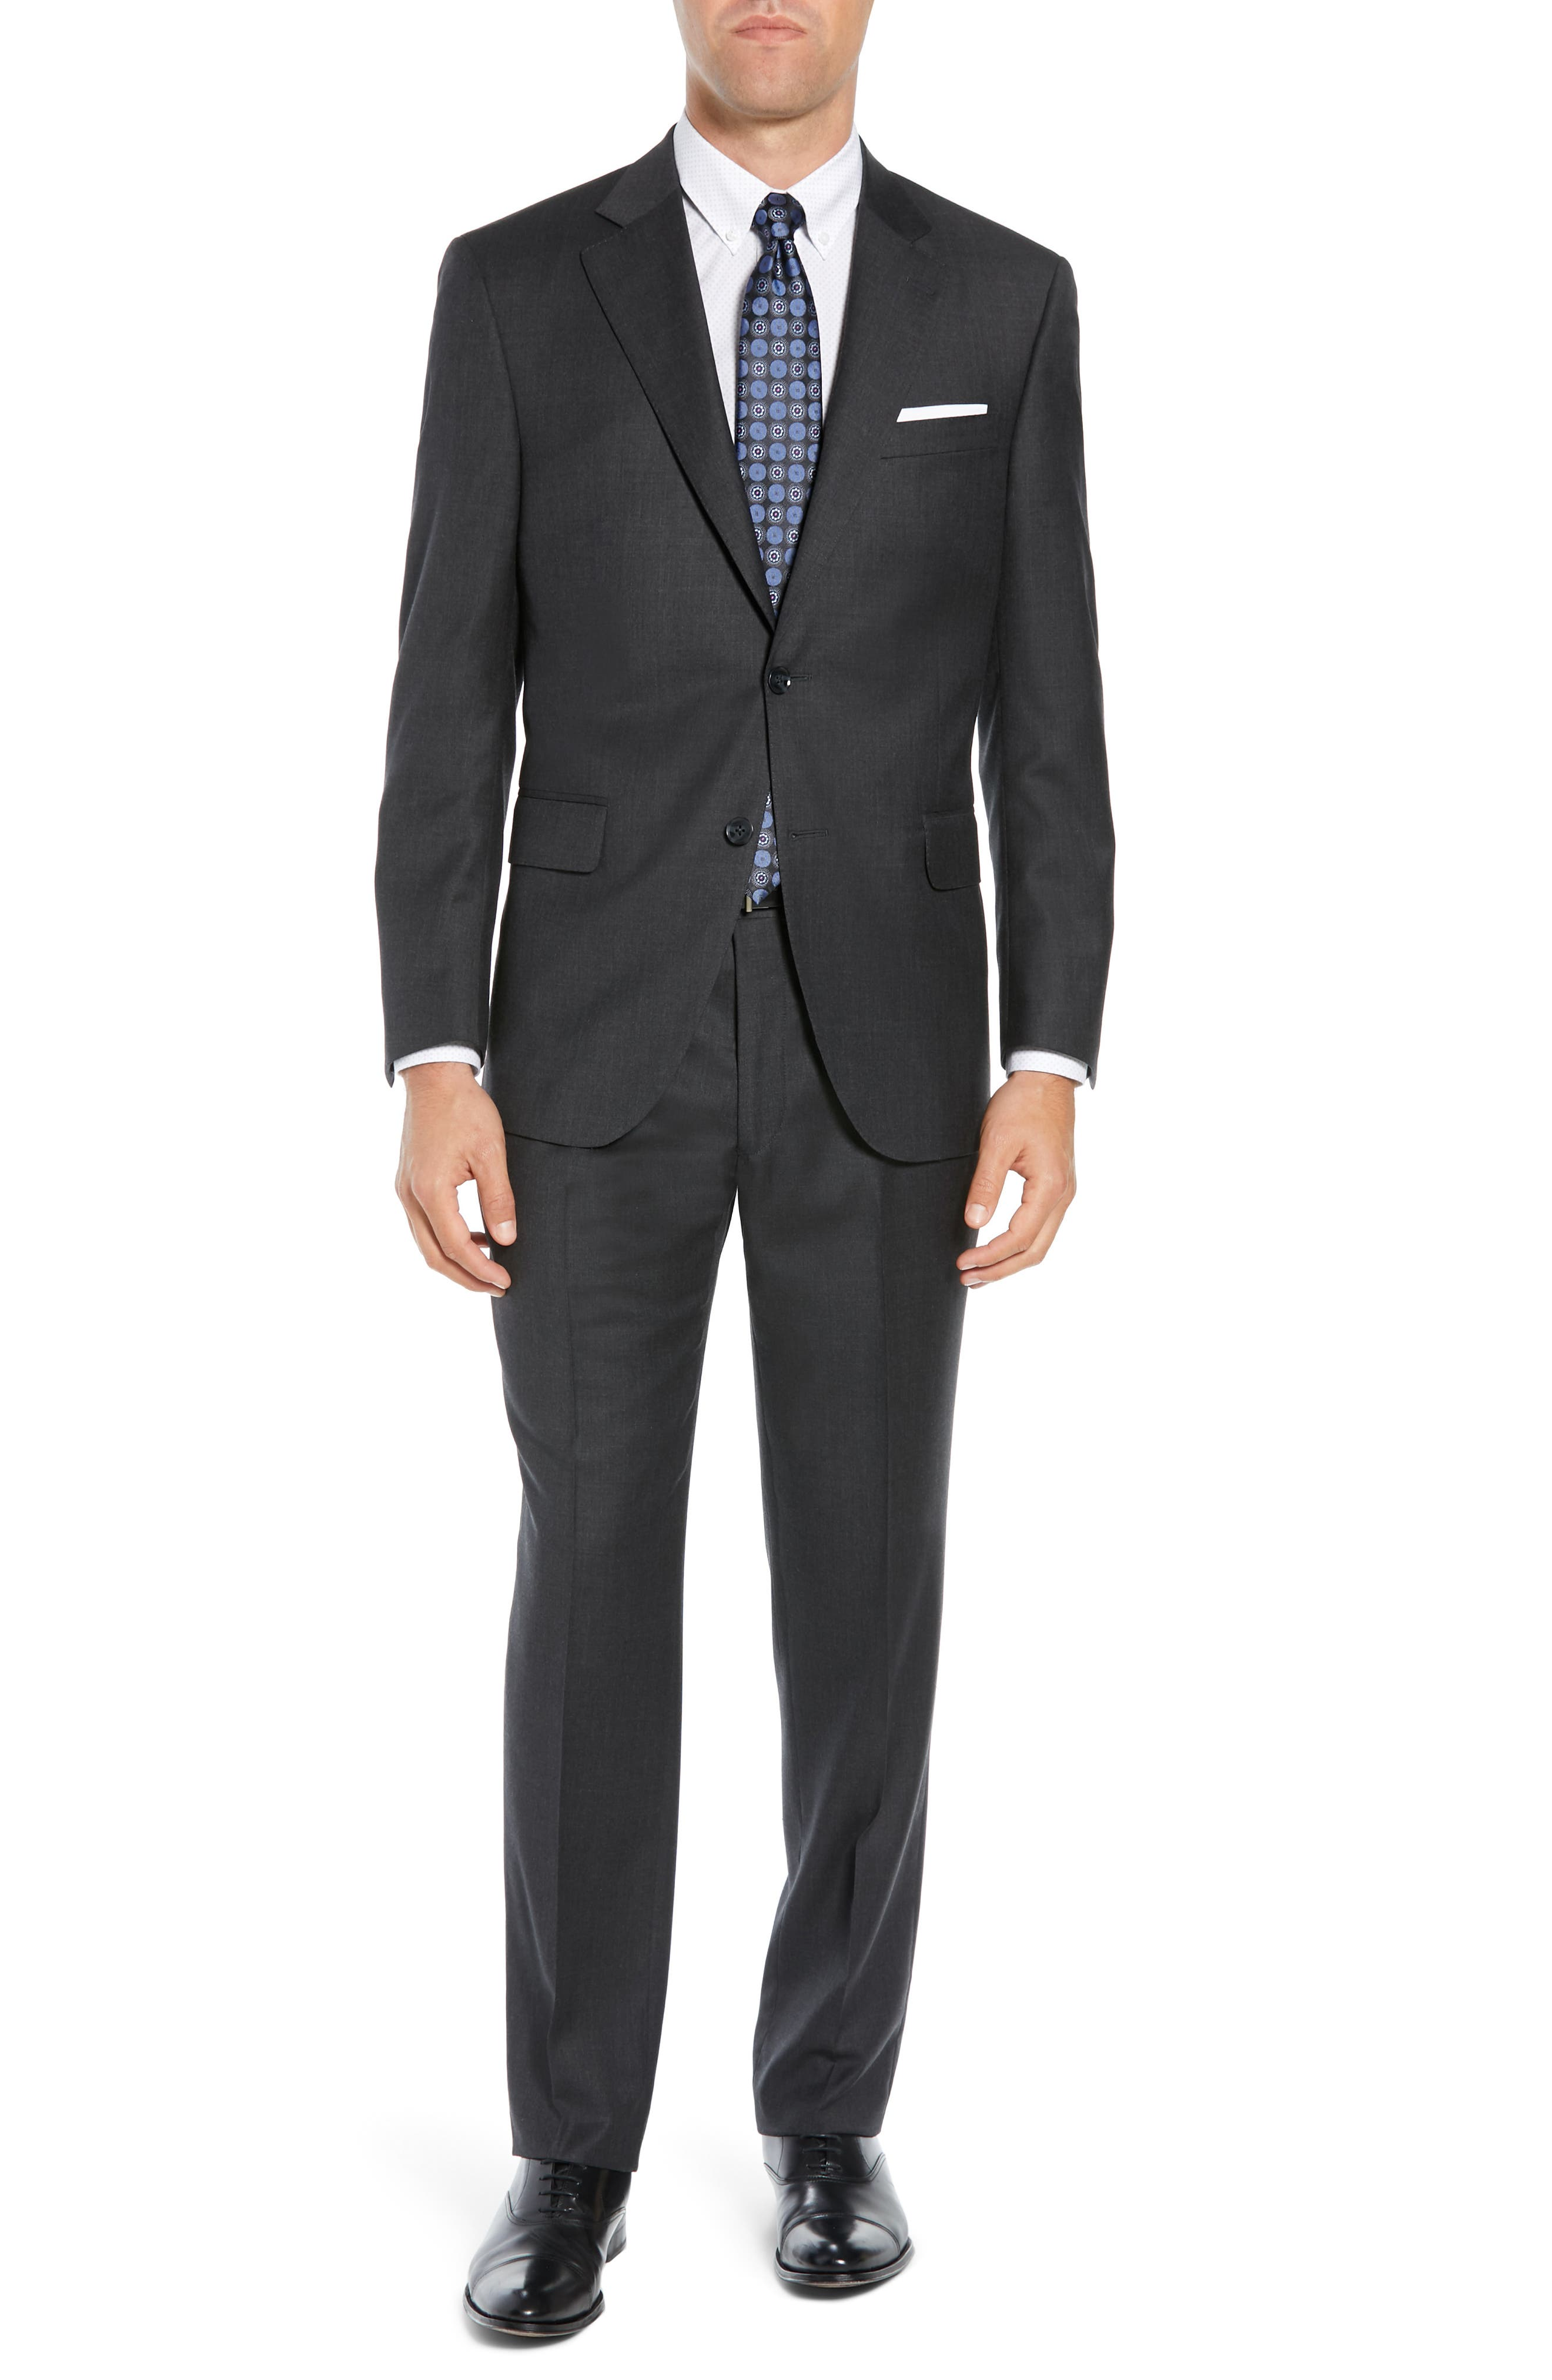 PETER MILLAR, Classic Fit Wool Suit, Main thumbnail 1, color, CHARCOAL